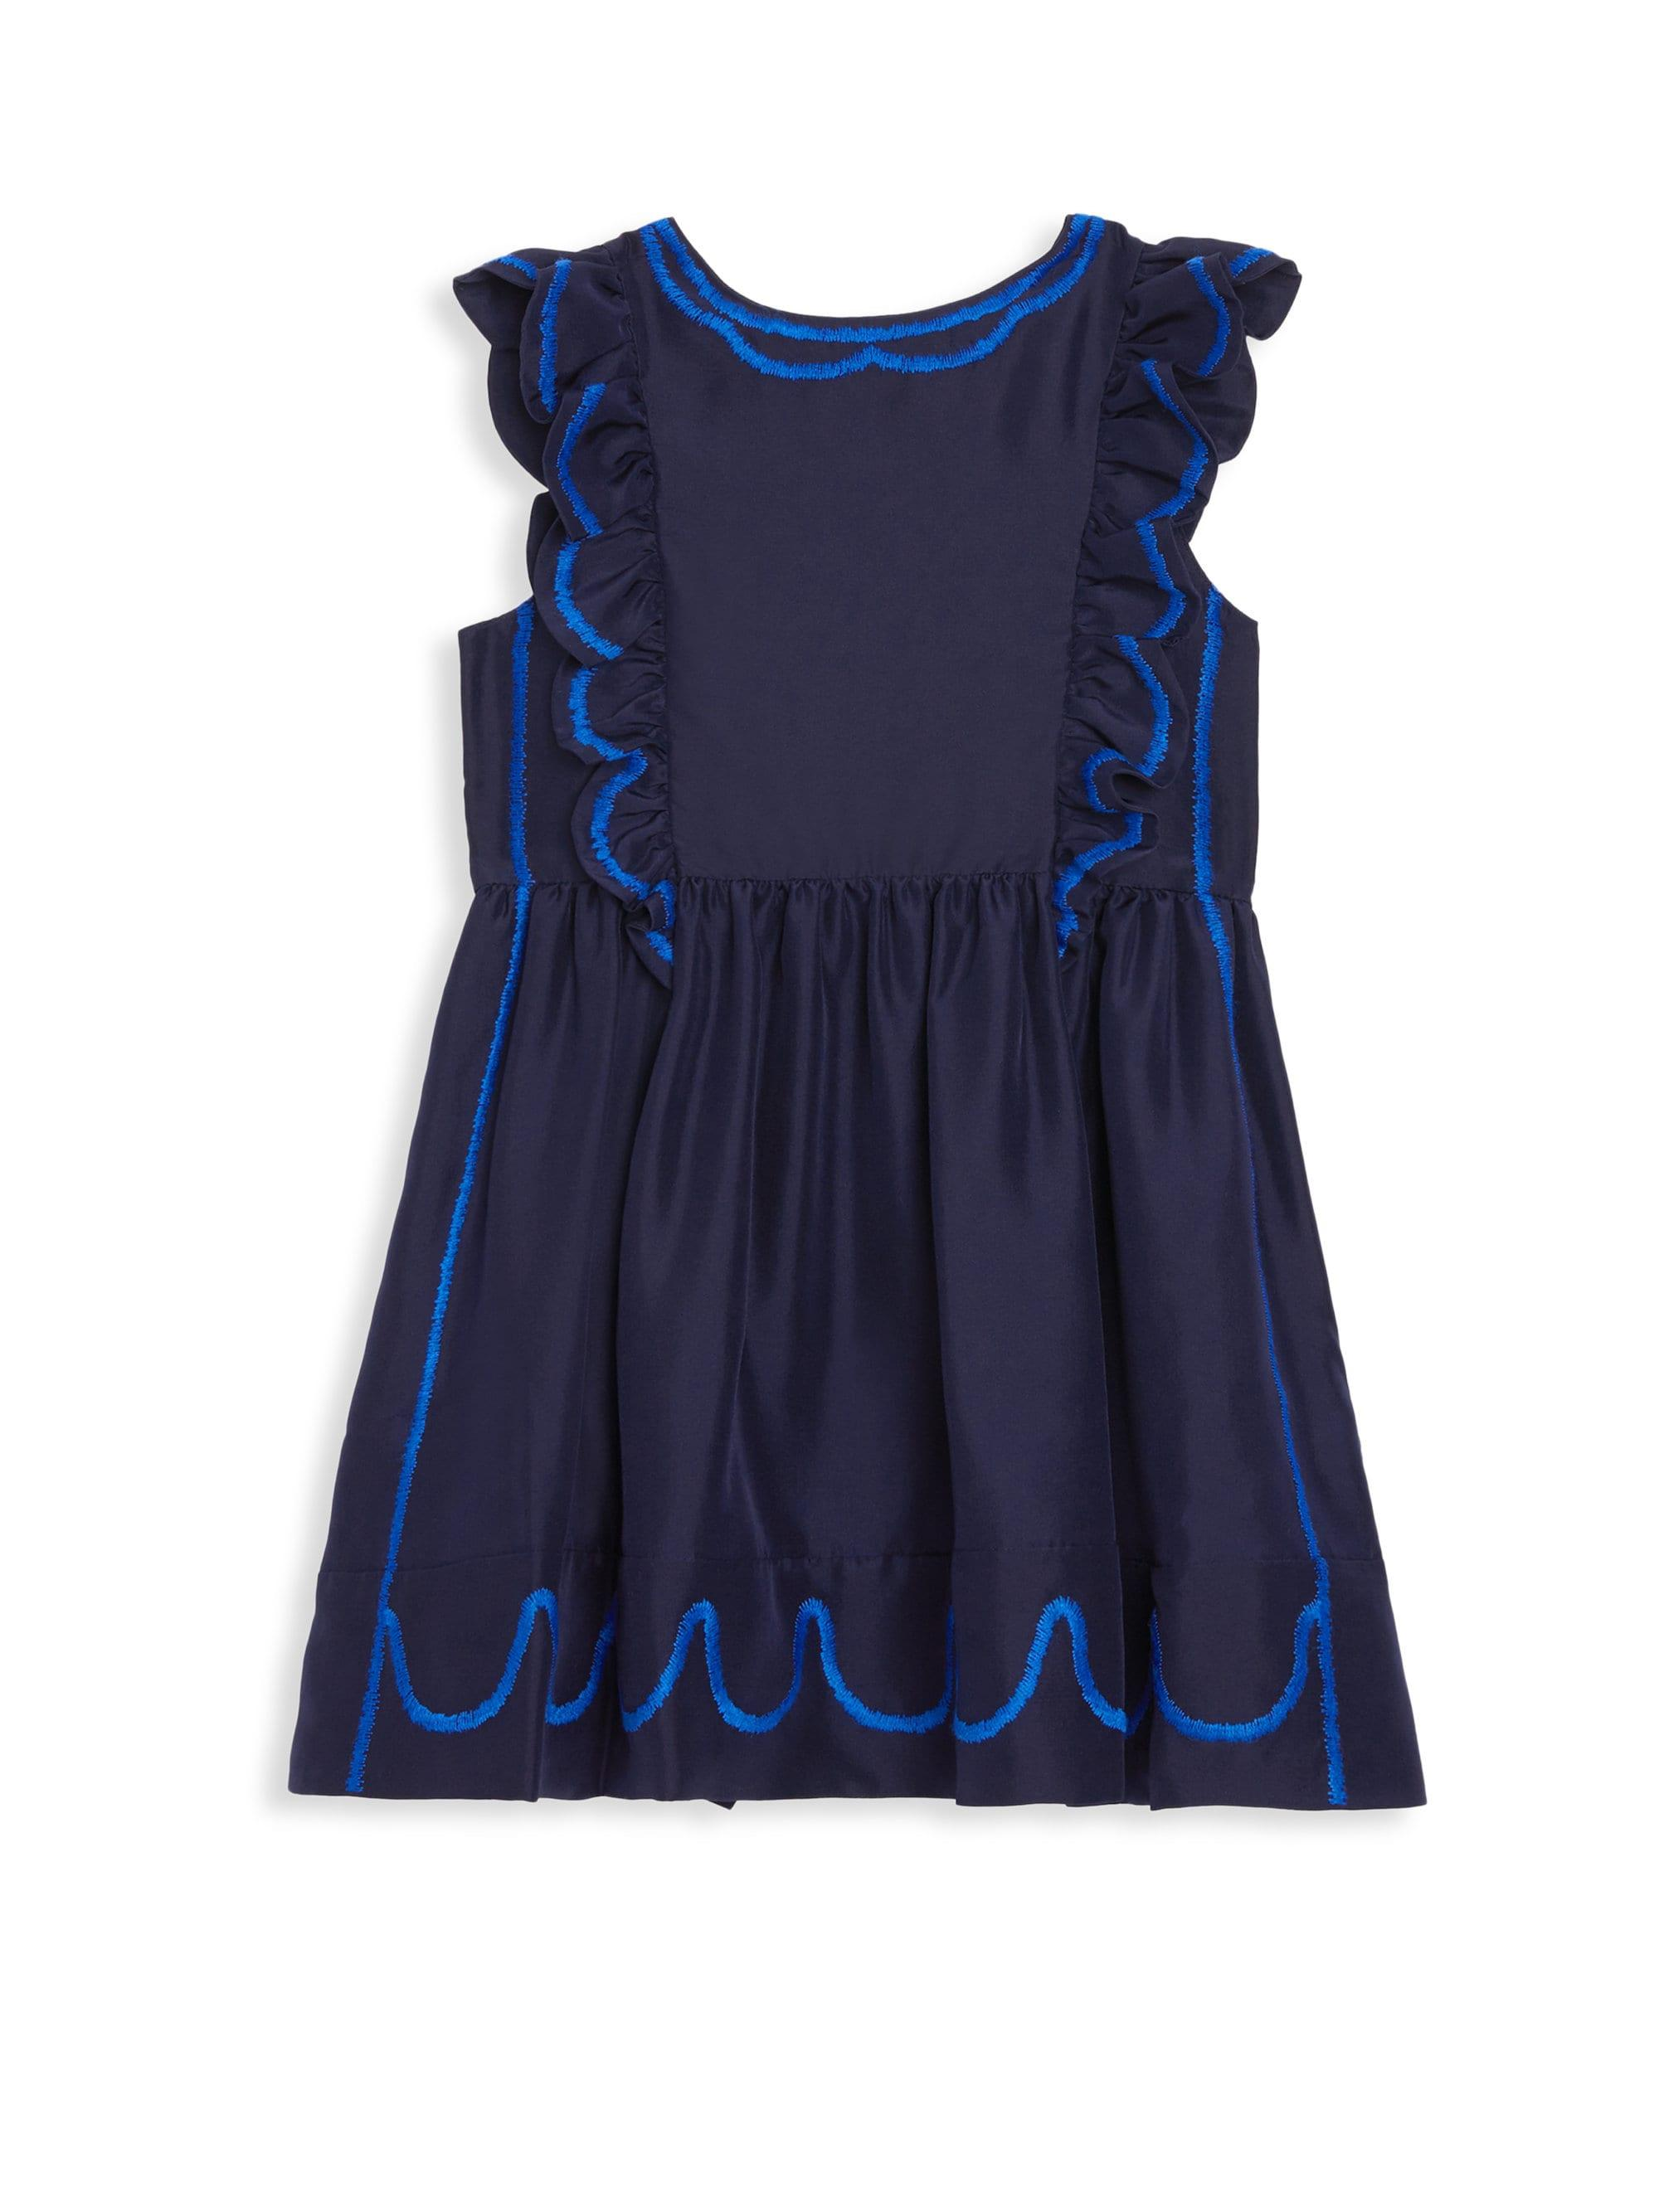 73ad31f27e07 Lyst - Burberry Little Girl's & Girl's Silk Pinafore Dress in Blue